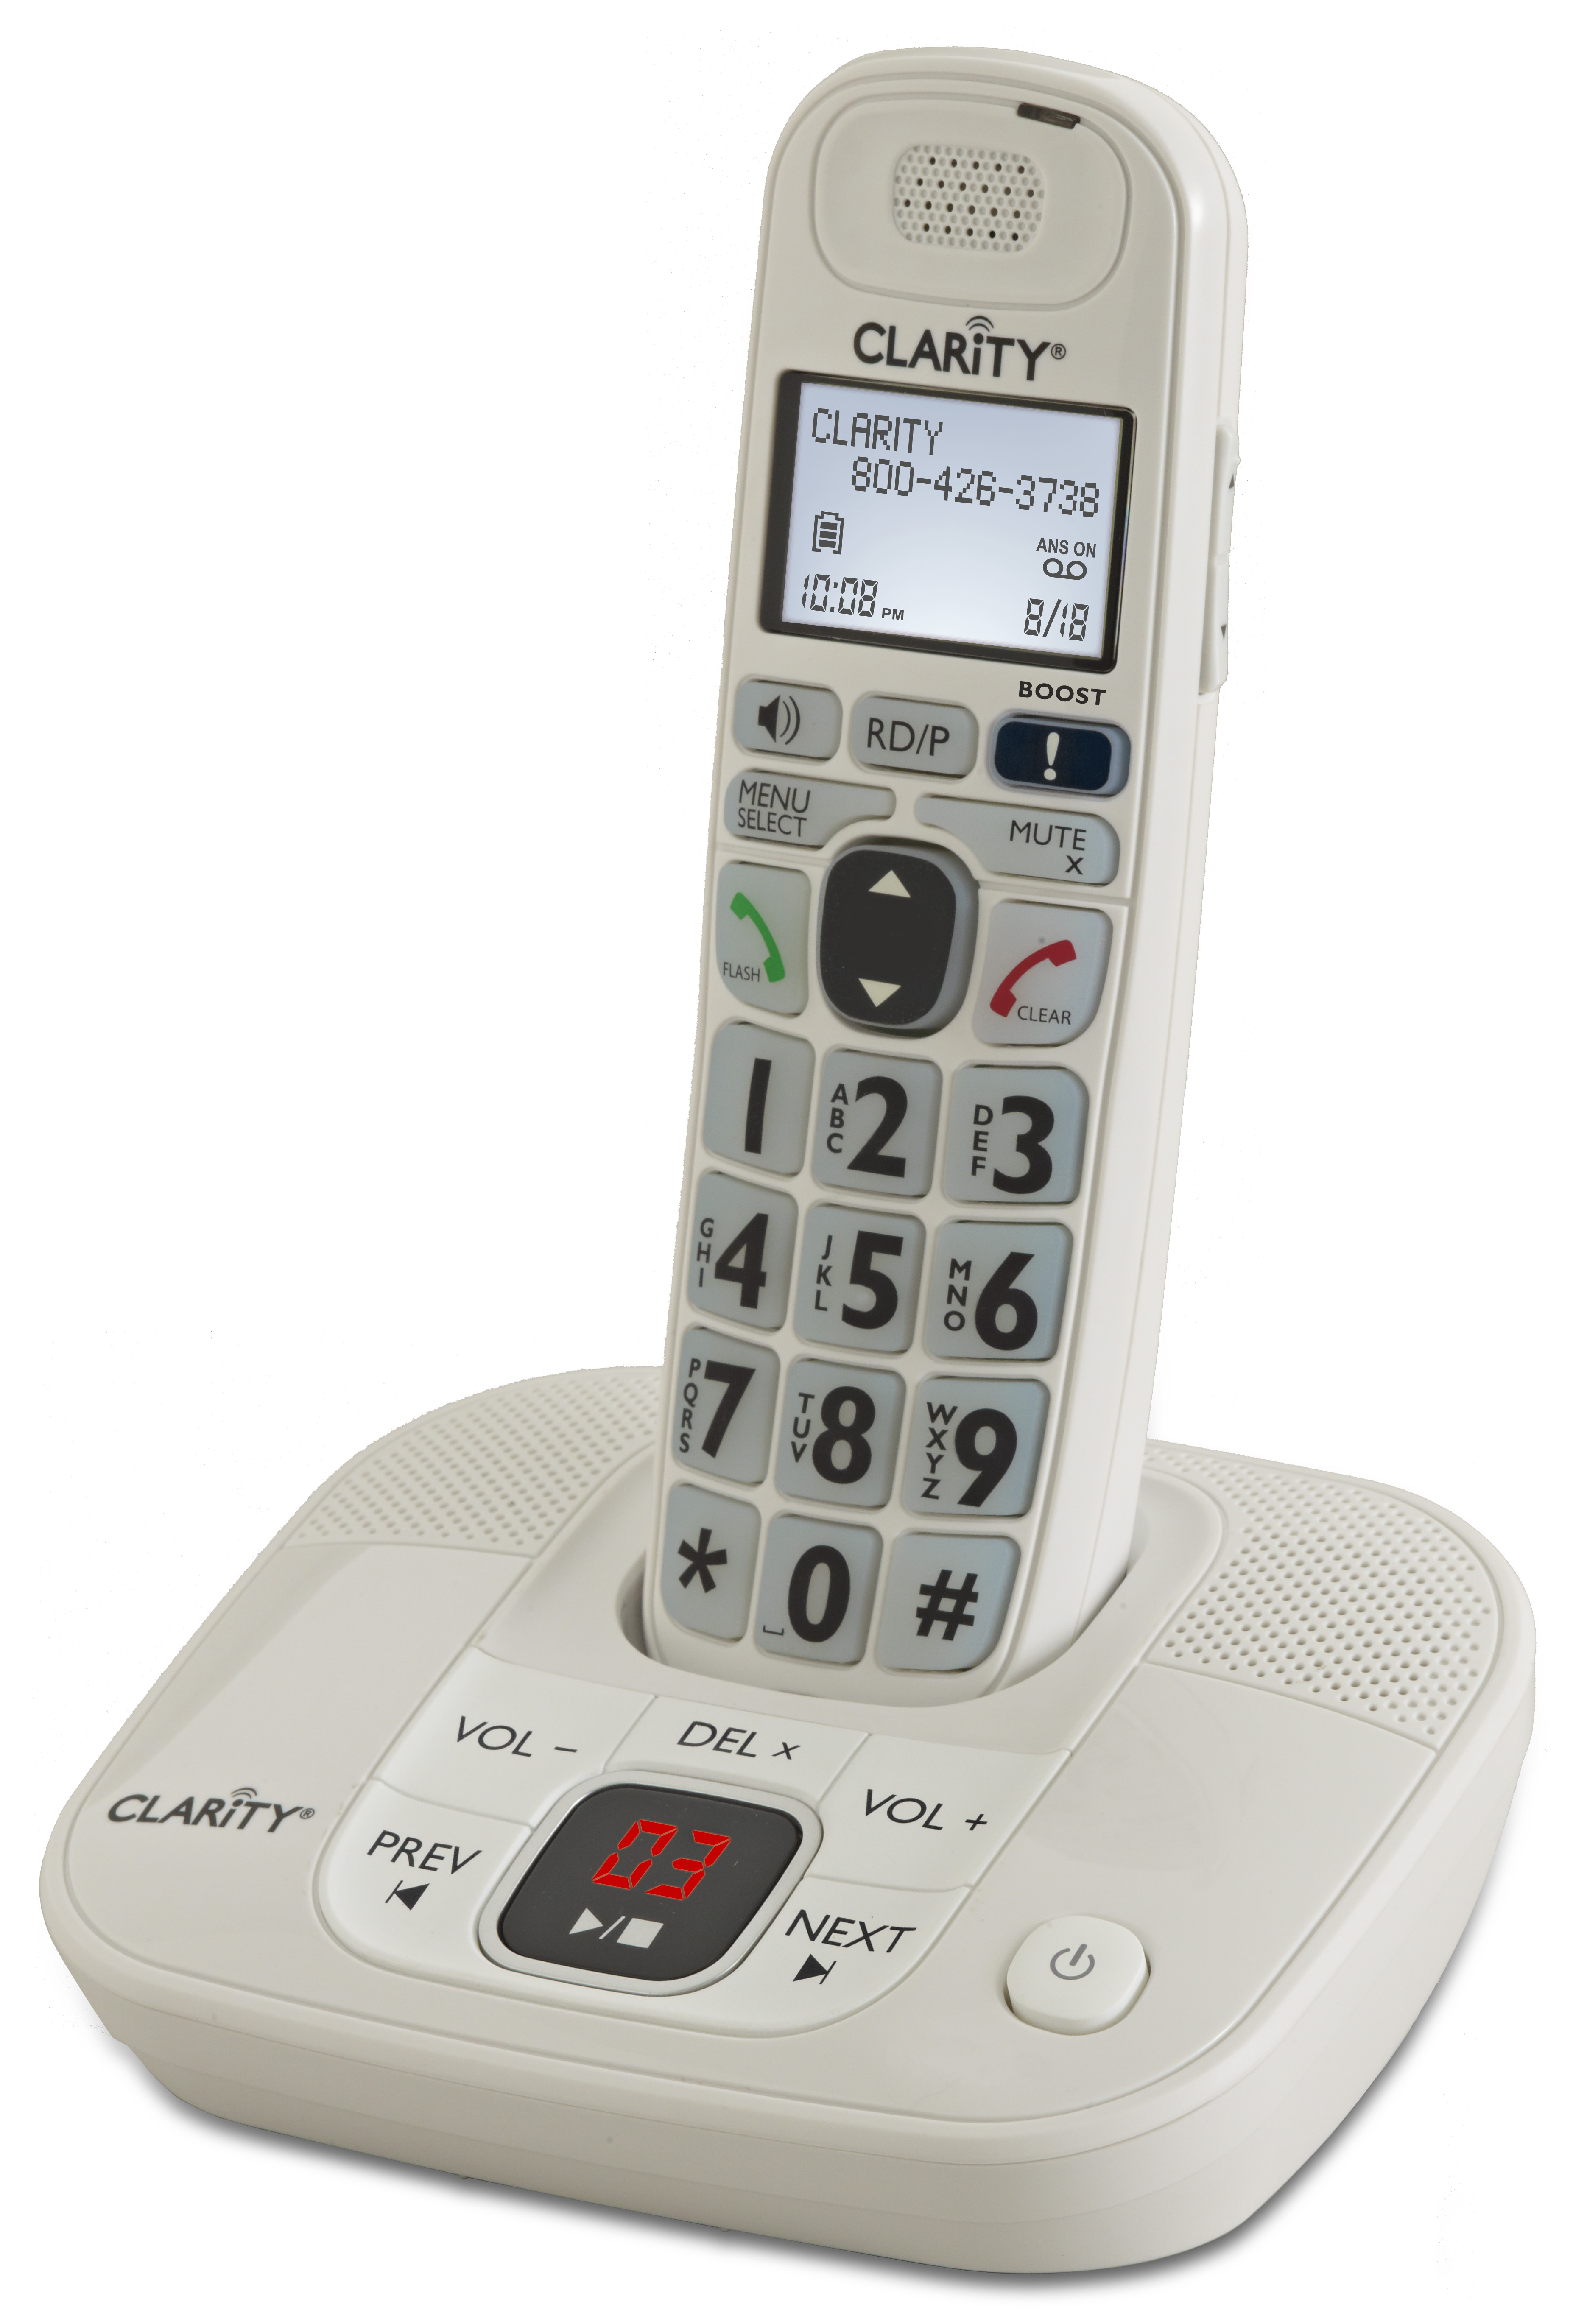 Image for Clarity D714 Amplified Phone With Digital Answering System from Circuit City